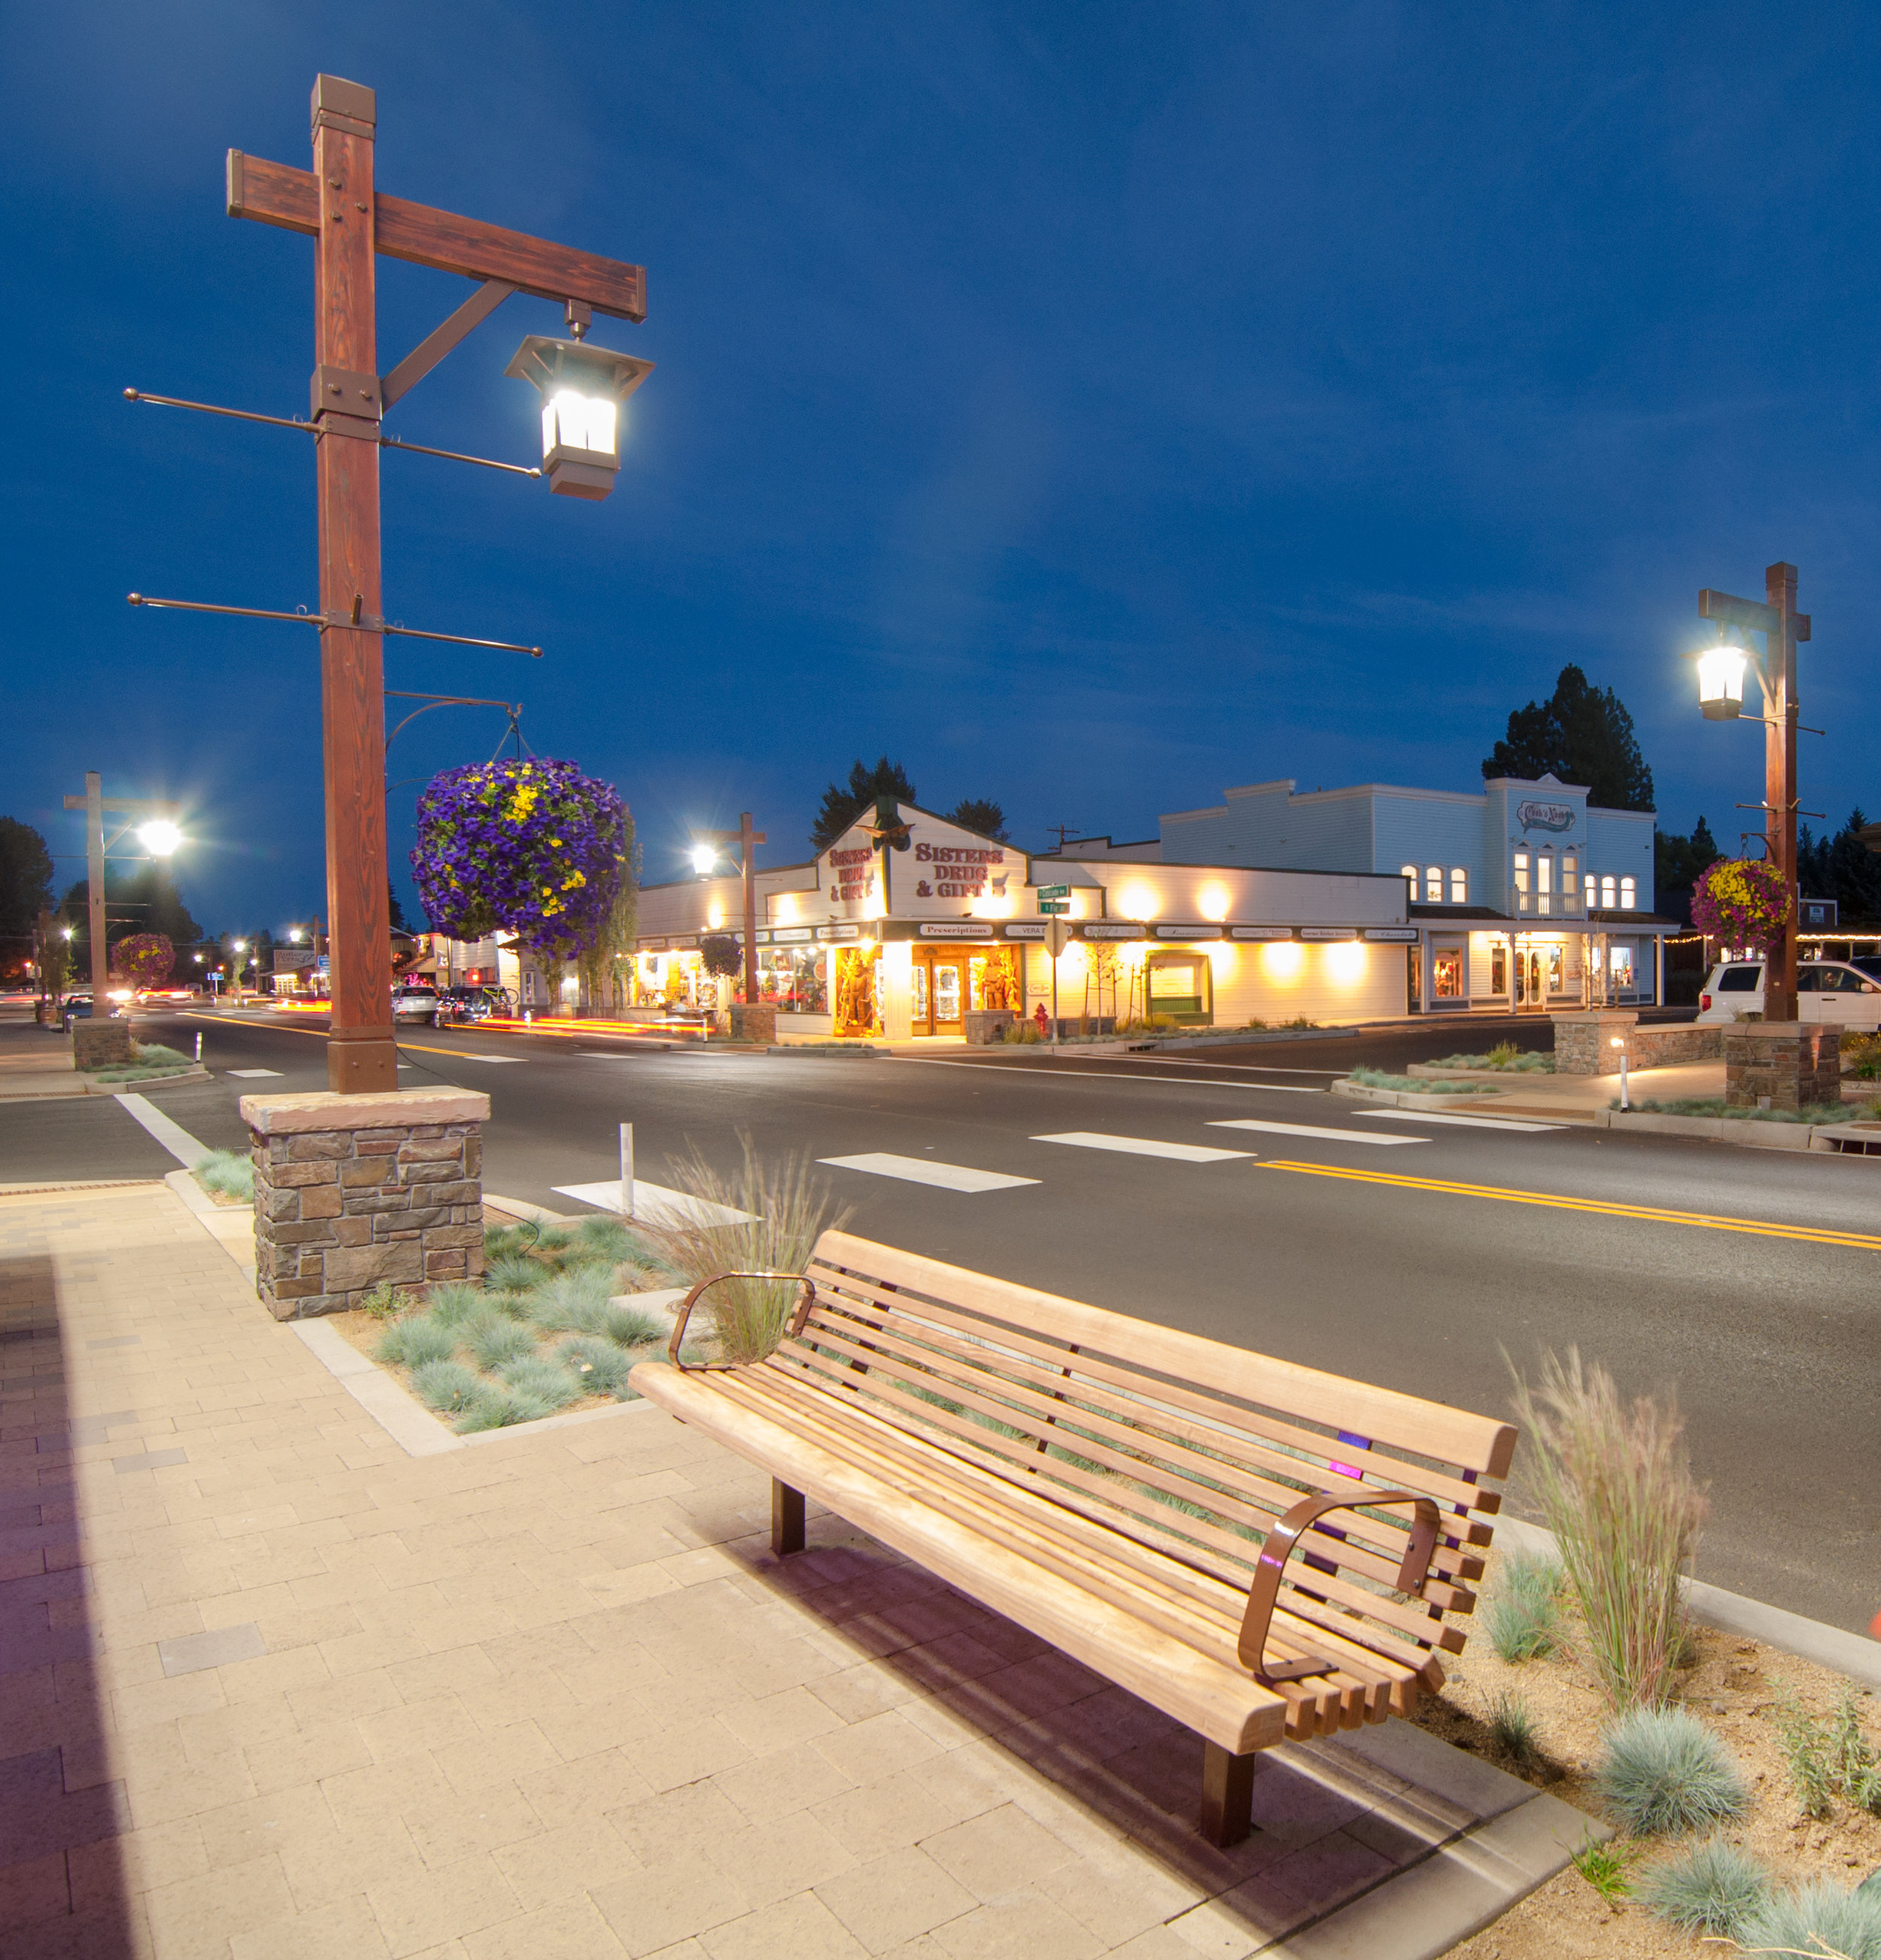 twilight street with lit lamp posts, a bench, and grasses lining highway 20